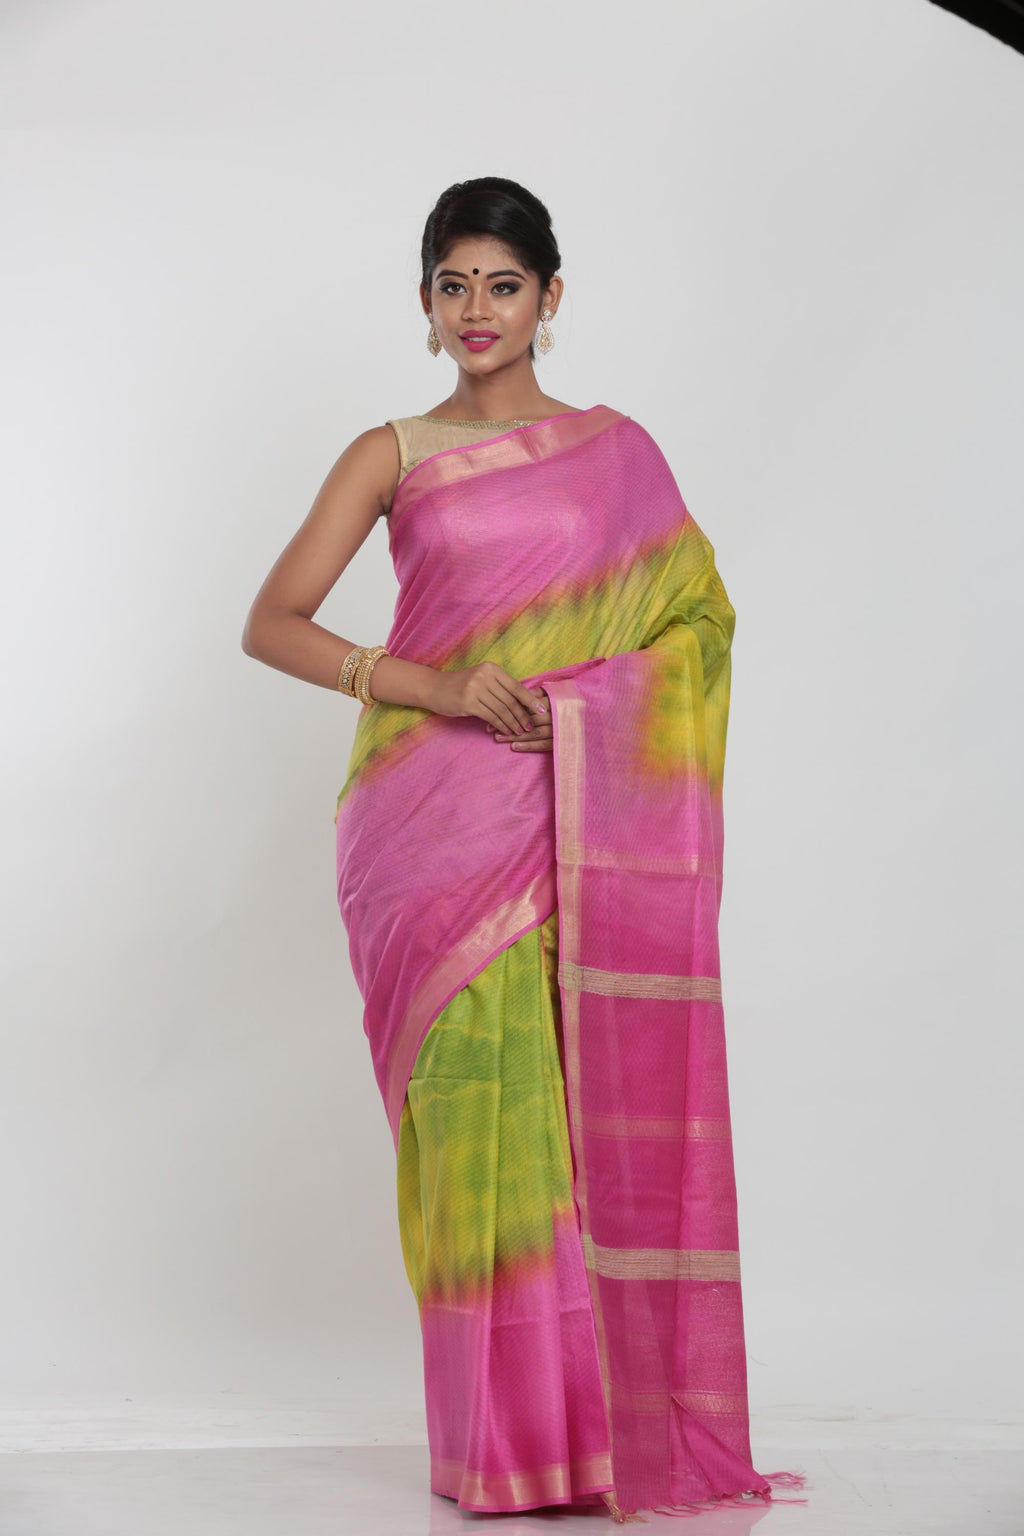 GREEN COLOUR MUGA HANDLOOM SAREE WITH CONTRASTING TIE AND DIE EFFECT